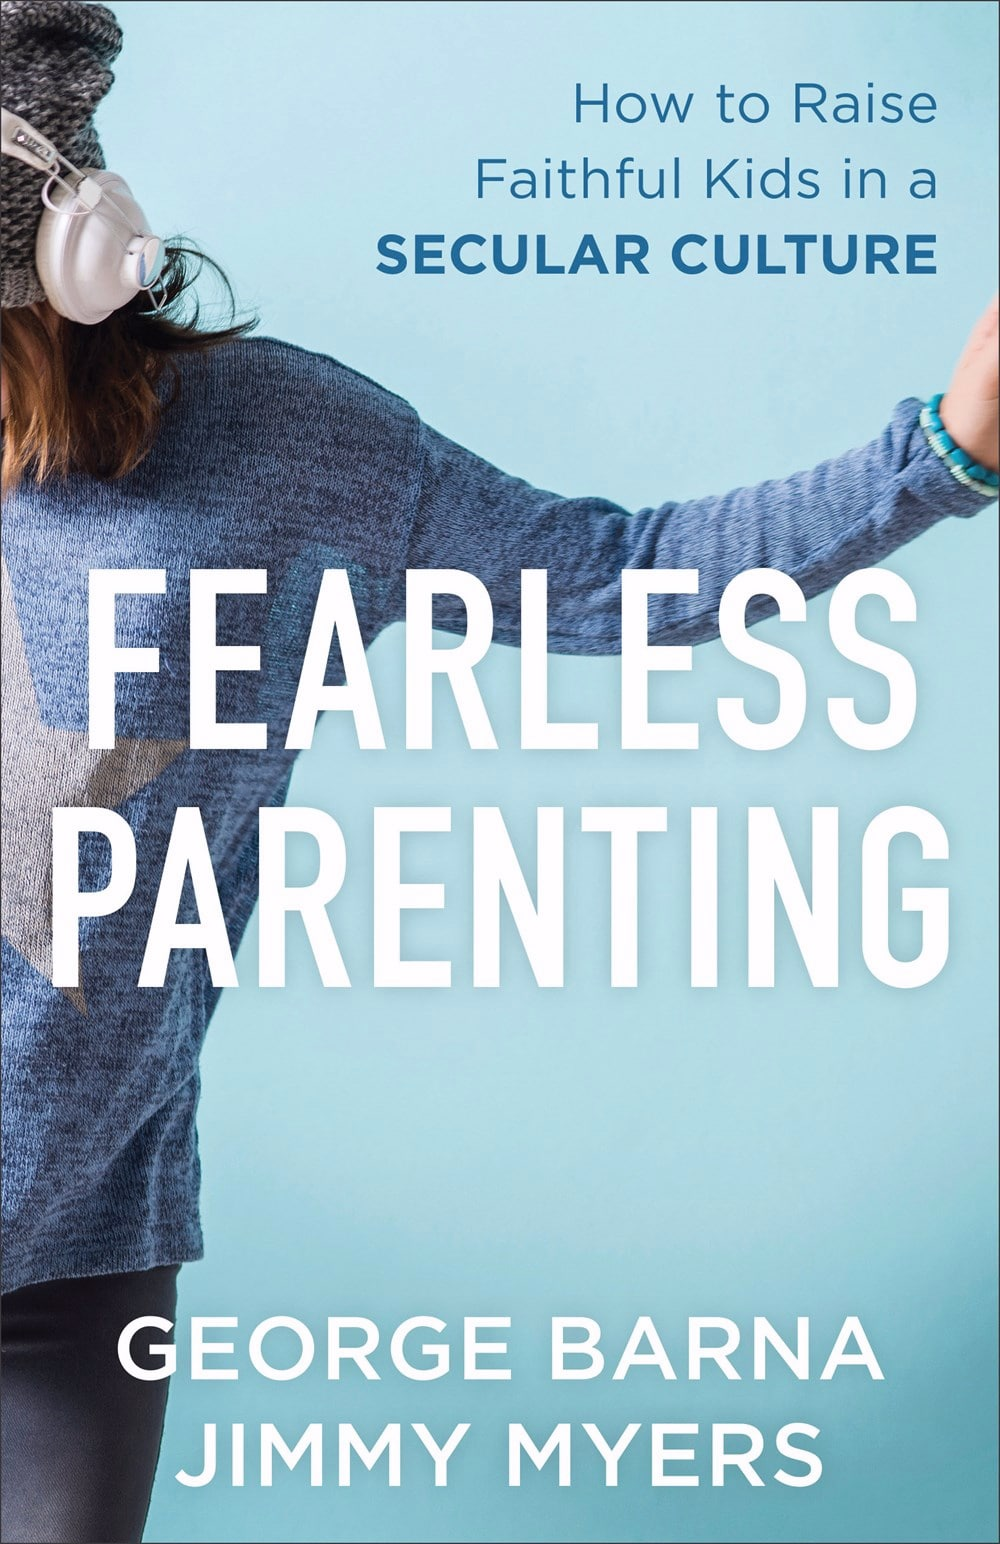 Marriage relationships churchgrowth fearless parenting how to raise faithful kids in a secular culture fandeluxe Gallery